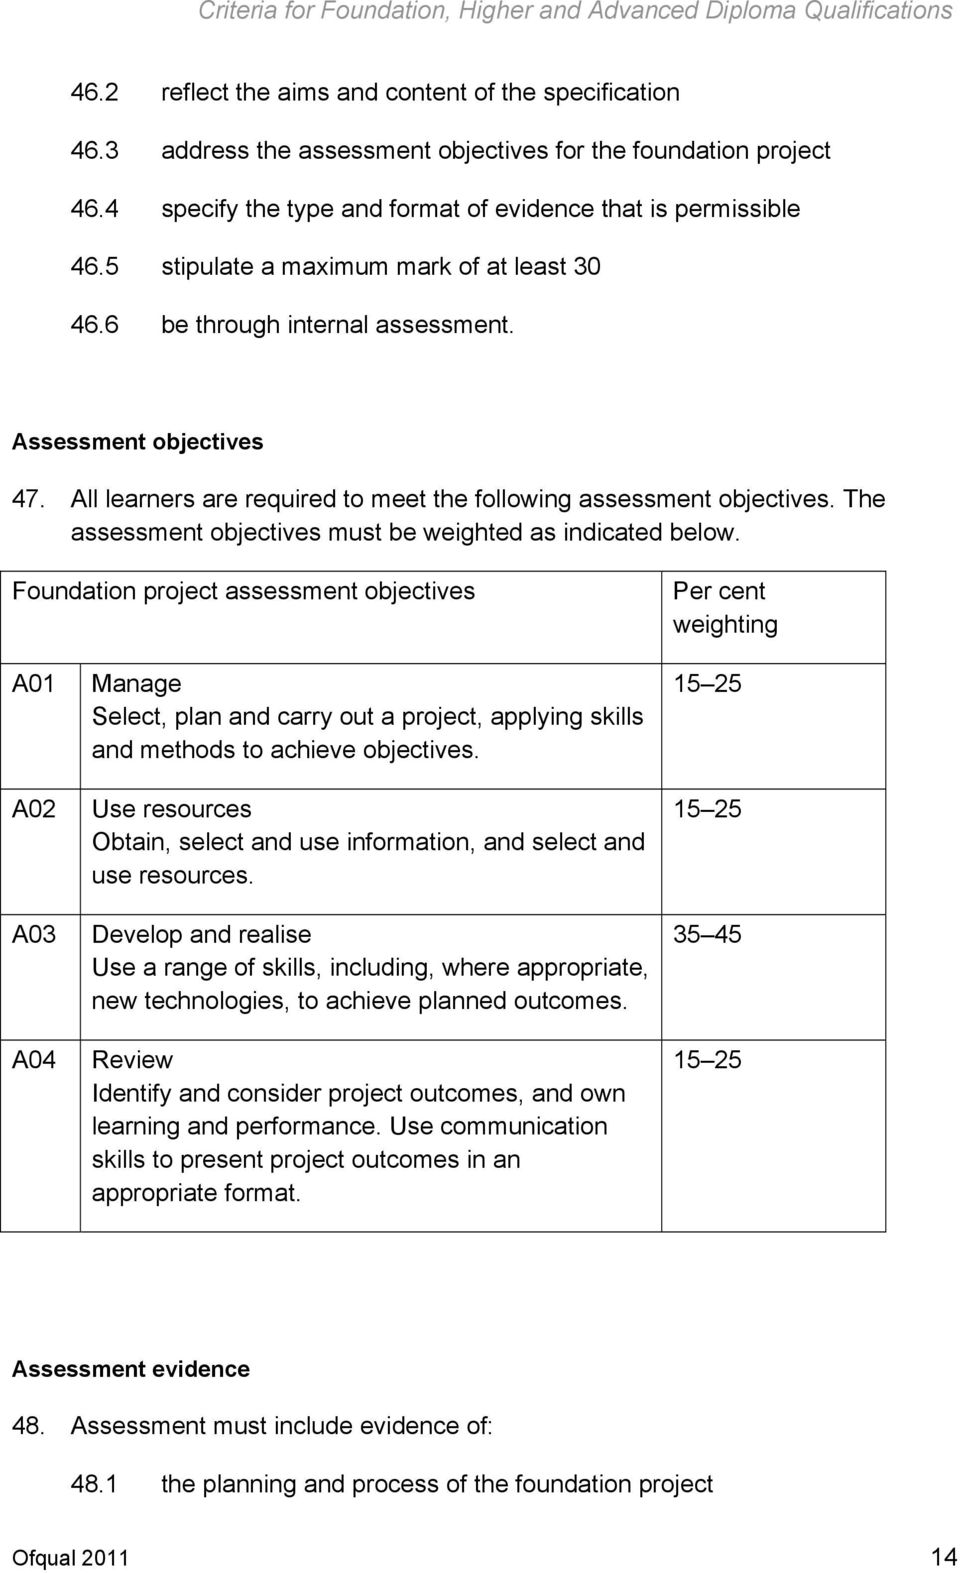 The assessment objectives must be weighted as indicated below.